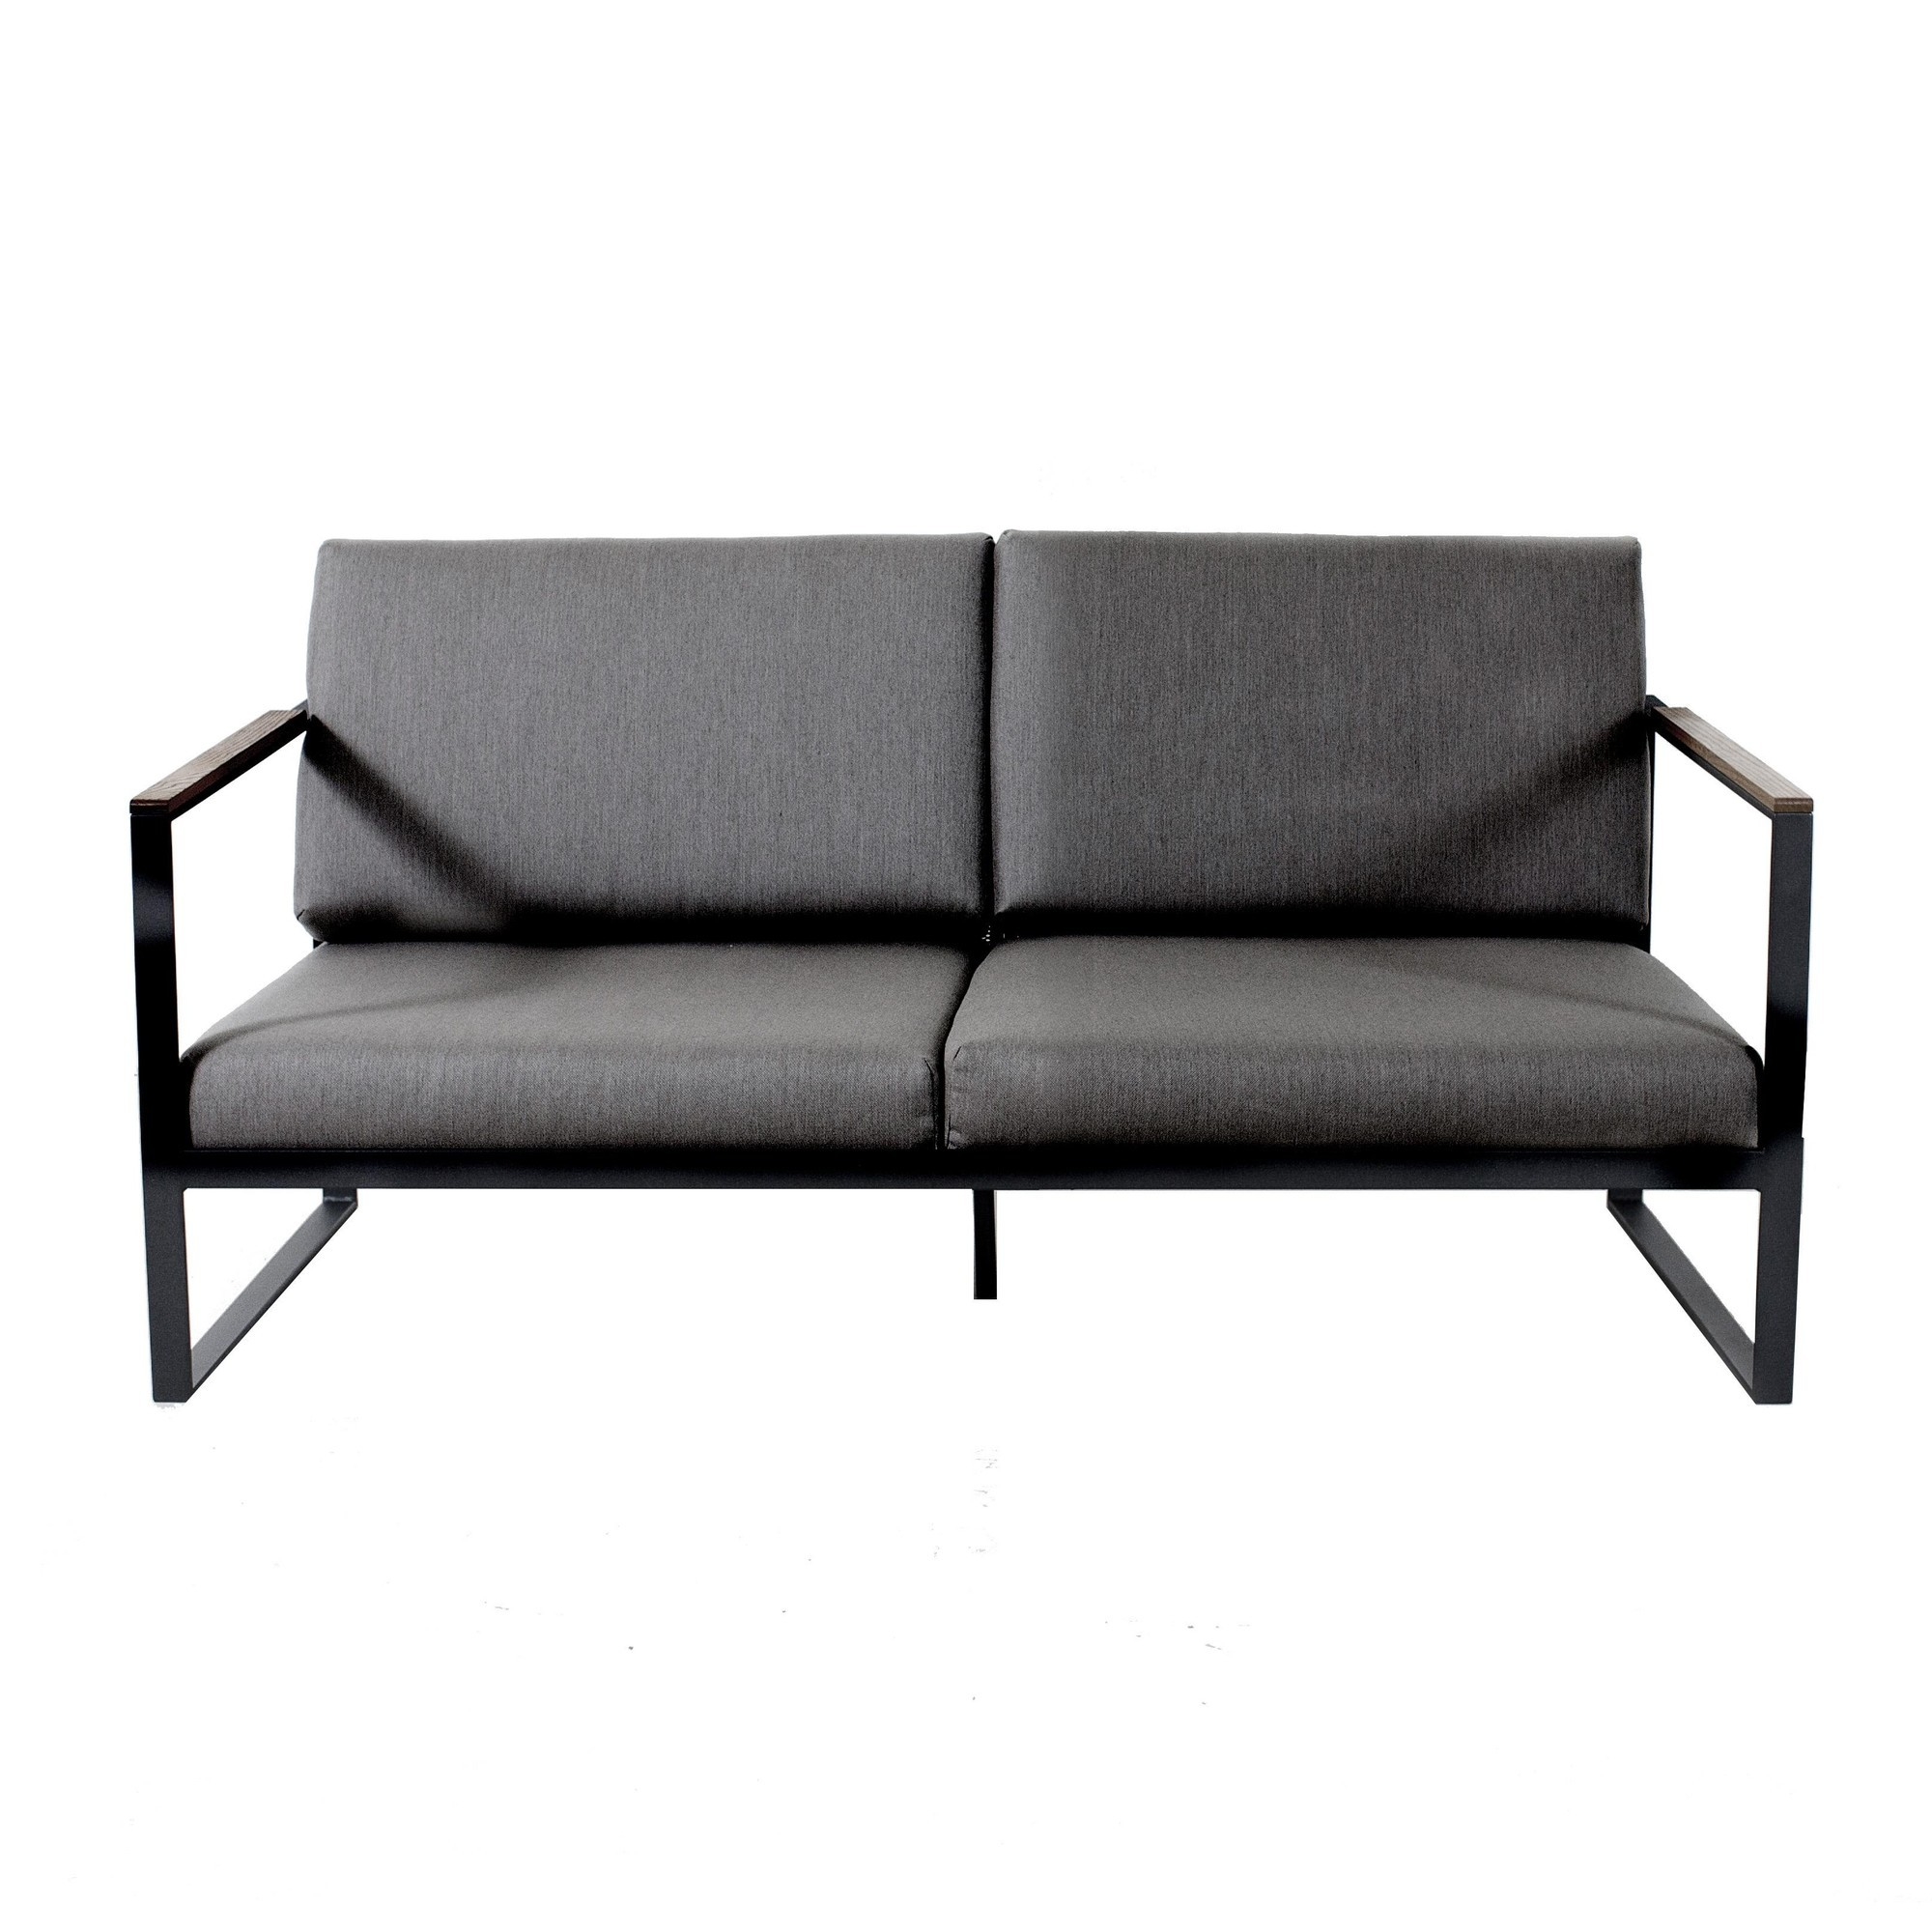 r shults garden easy 2 sitzer sofa ambientedirect. Black Bedroom Furniture Sets. Home Design Ideas